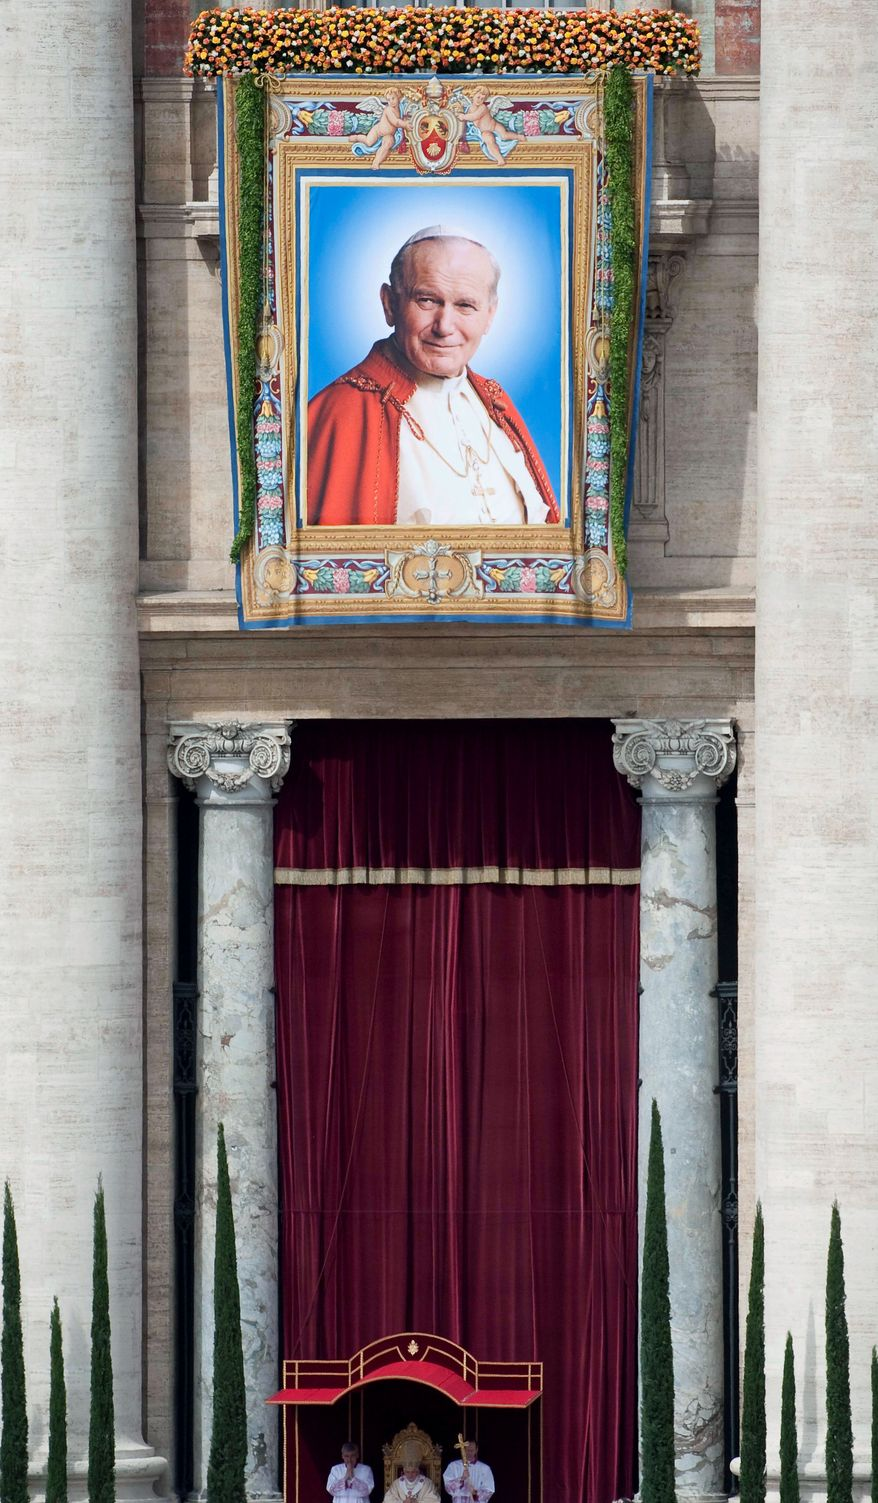 A tapestry bearing a 1995 picture of John Paul II is displayed during the Mass, which was watched by Catholics around the world.